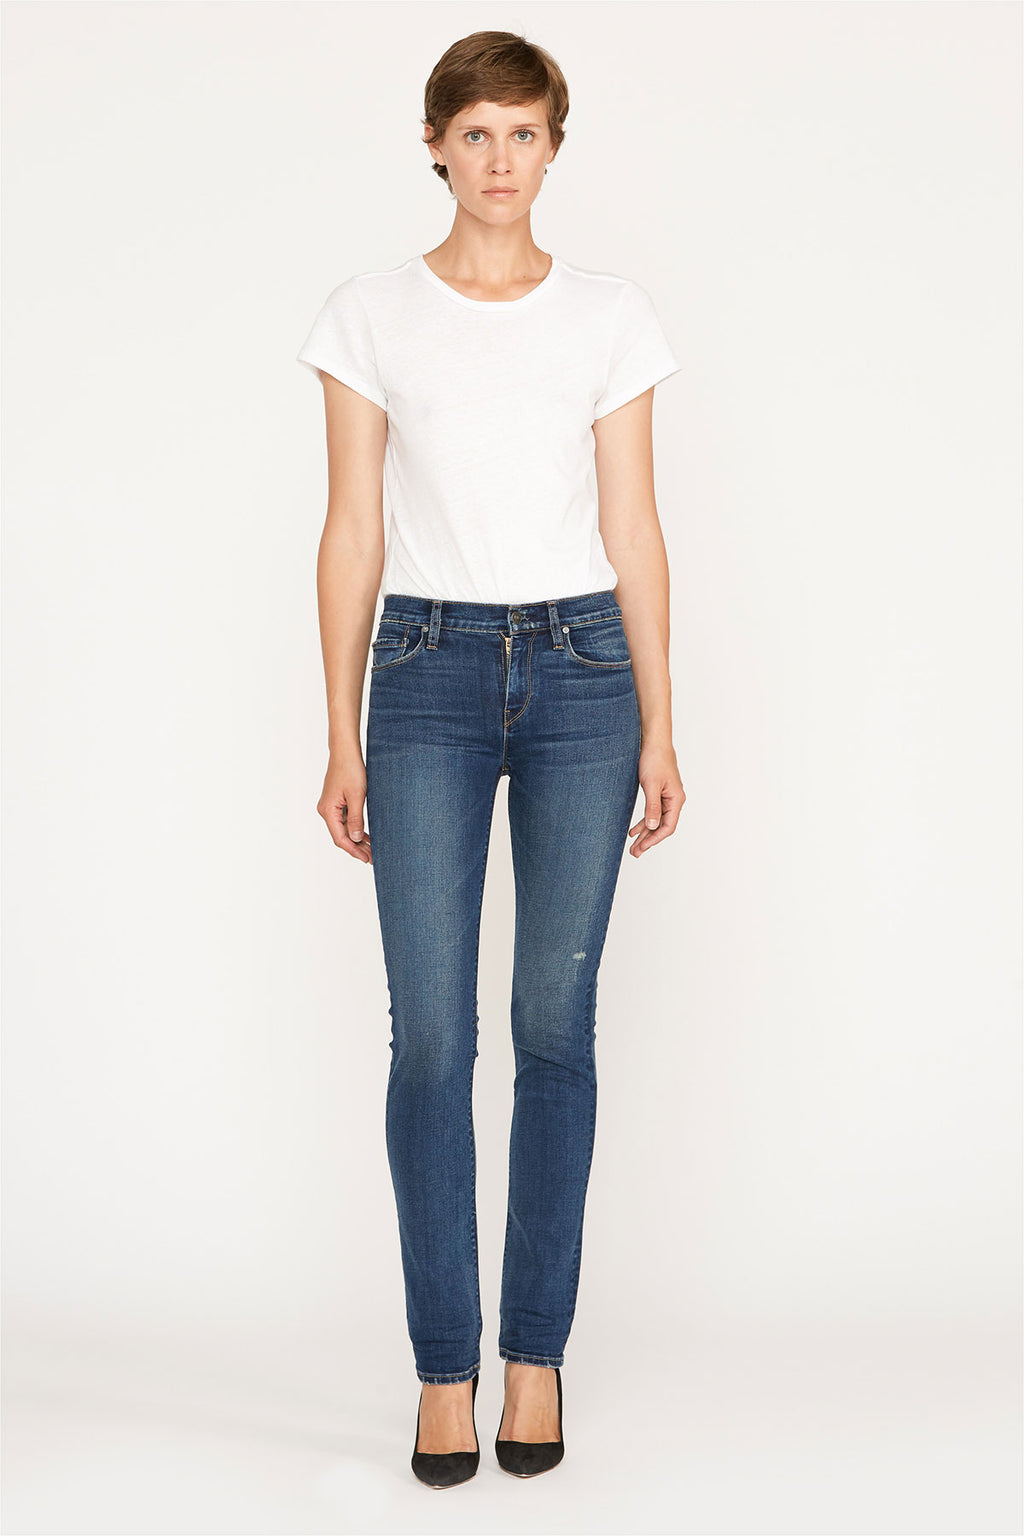 Nico Mid-Rise Straight Jean - hudsonjeans